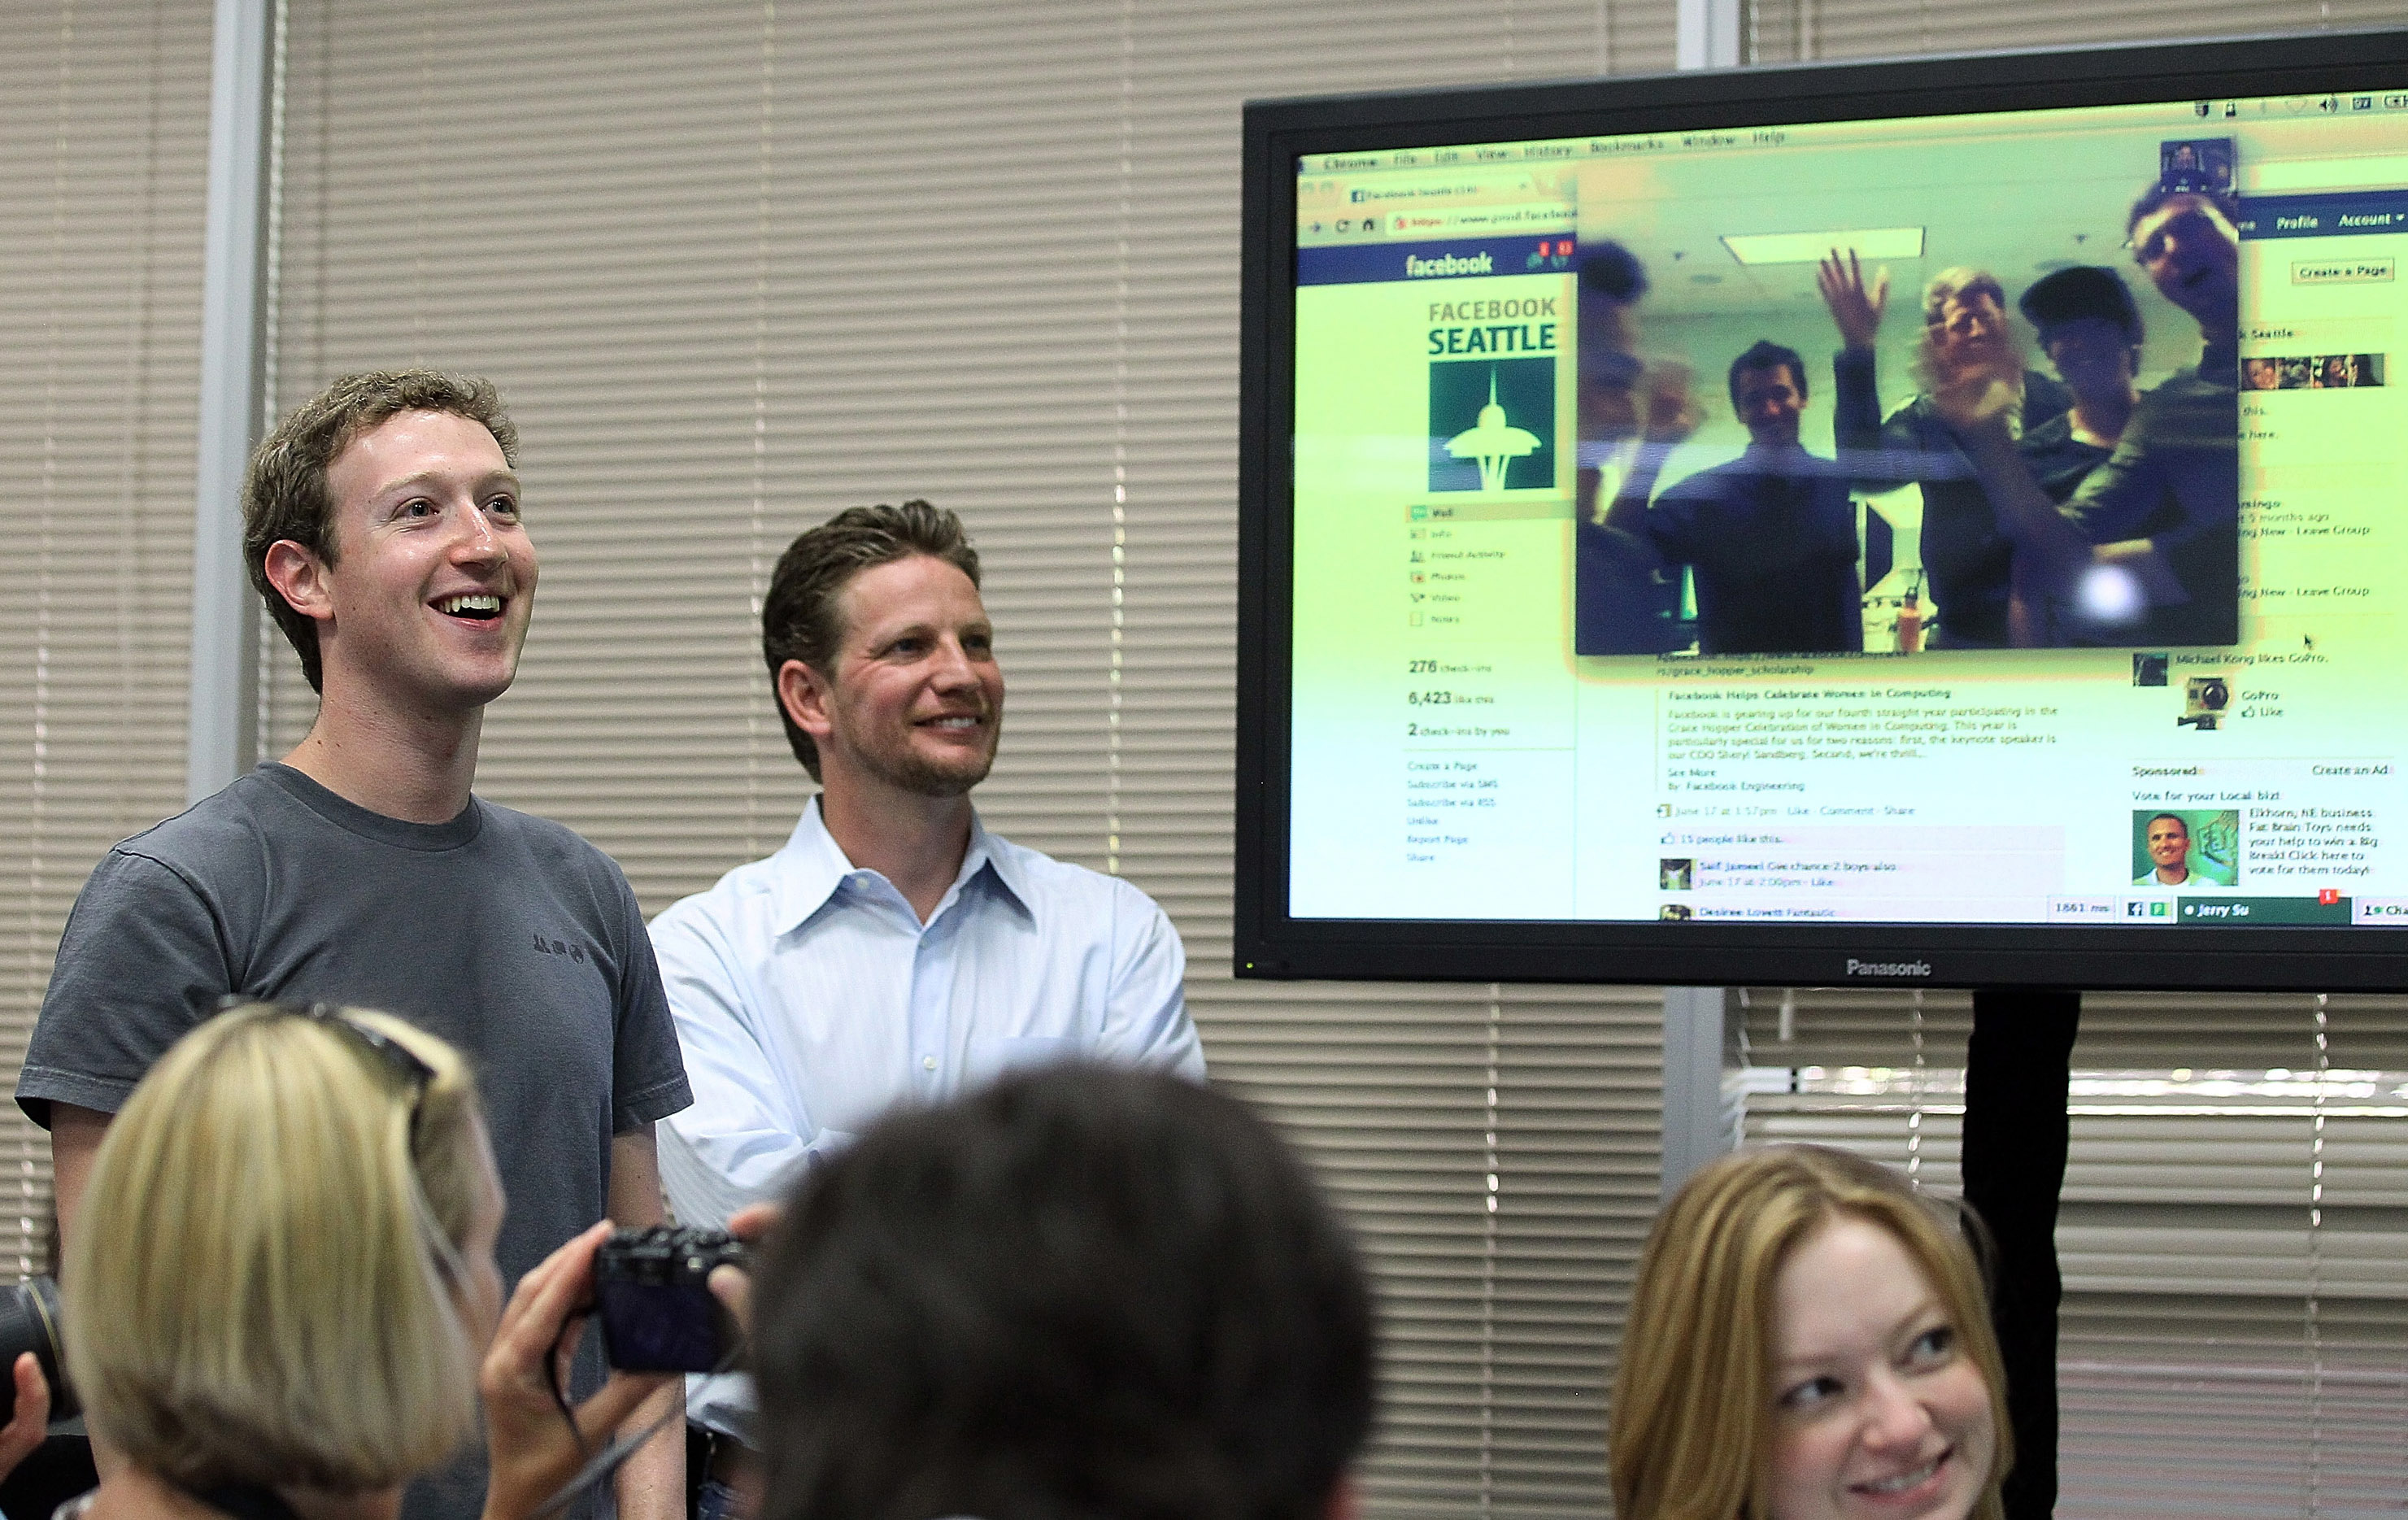 Facebook CEO Mark Zuckerberg watches a demonstration of Facebook video chat at Facebook headquarters in 2011.